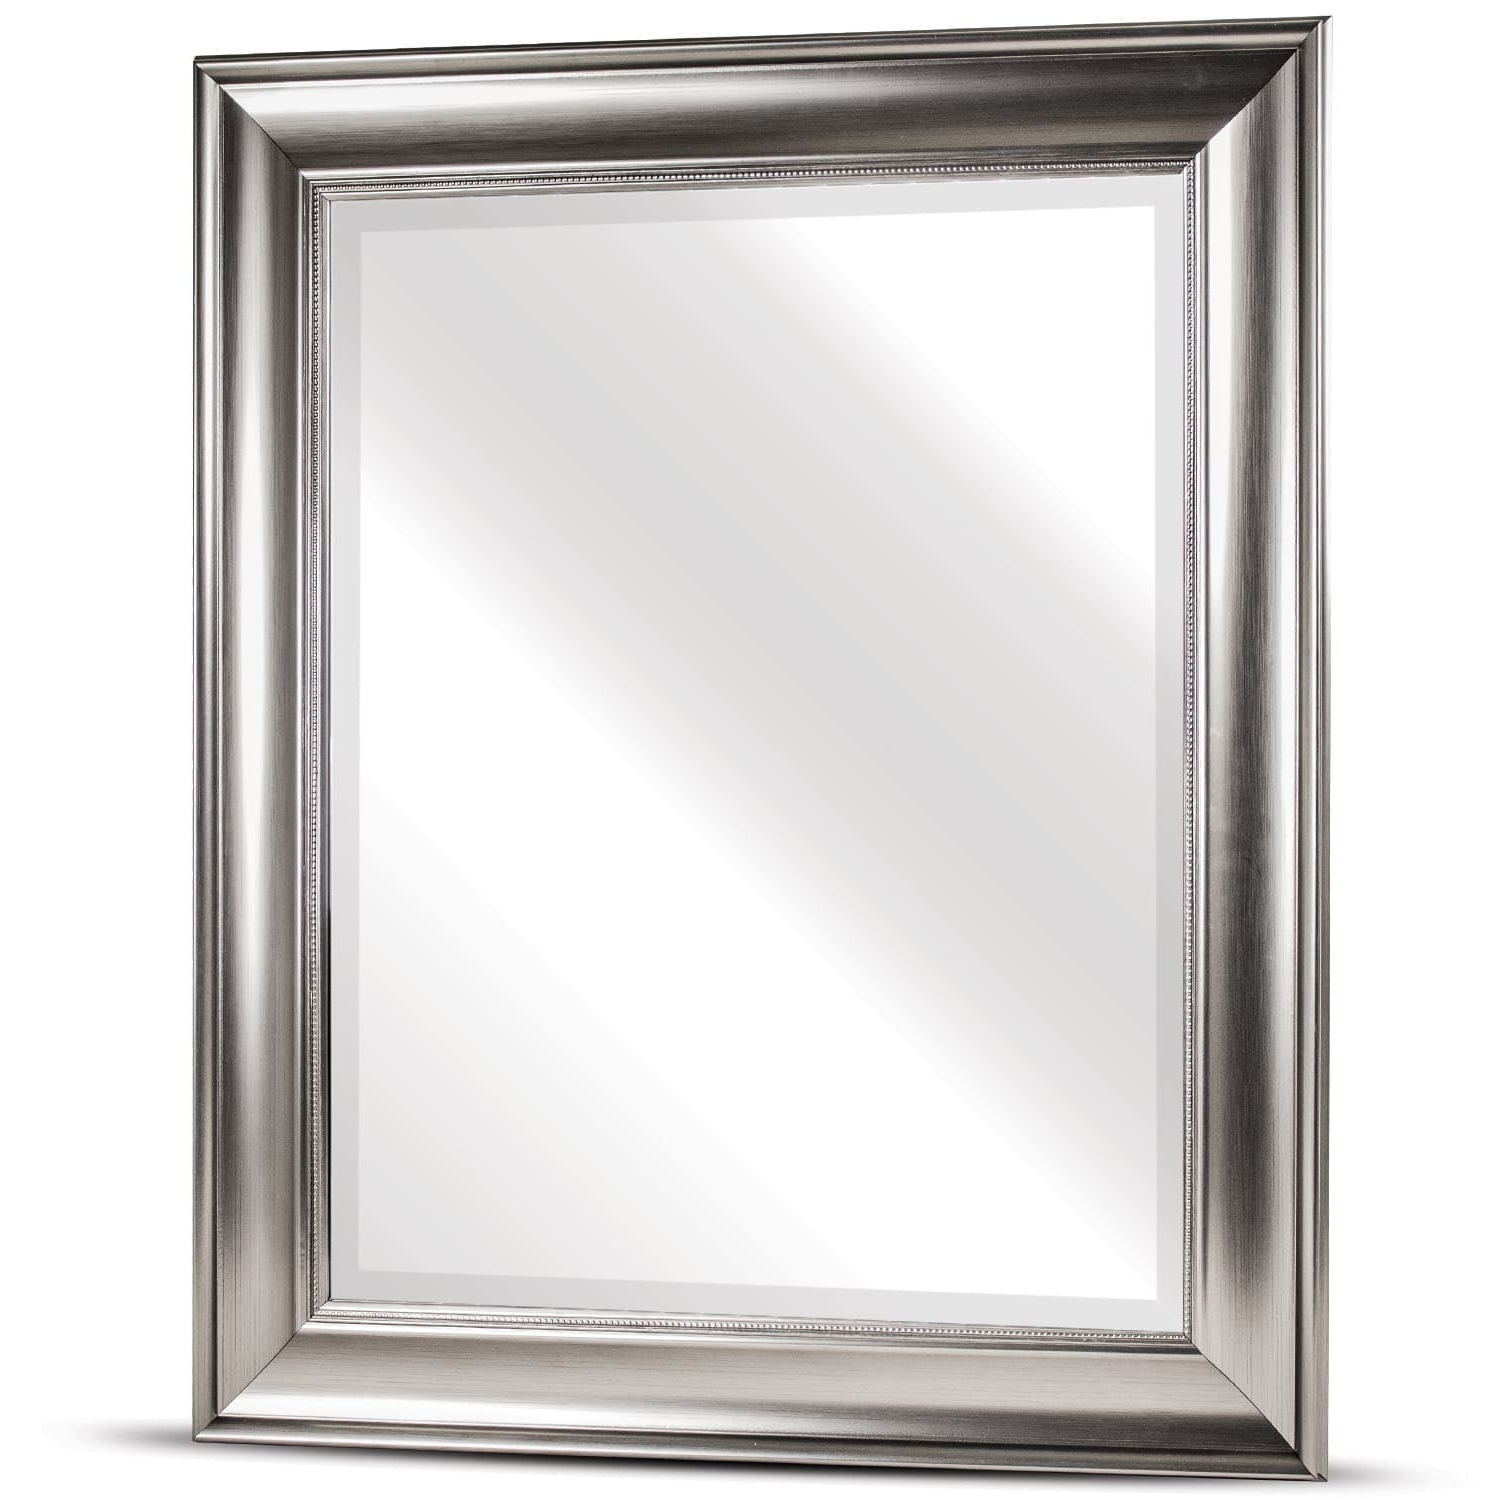 Fashionable Rectangle Plastic Beveled Wall Mirrors In American Art Decor Clarence Medium Rectangular Silver Textured Accent Framed Beveled Wall Vanity Mirror – A/n (View 13 of 20)